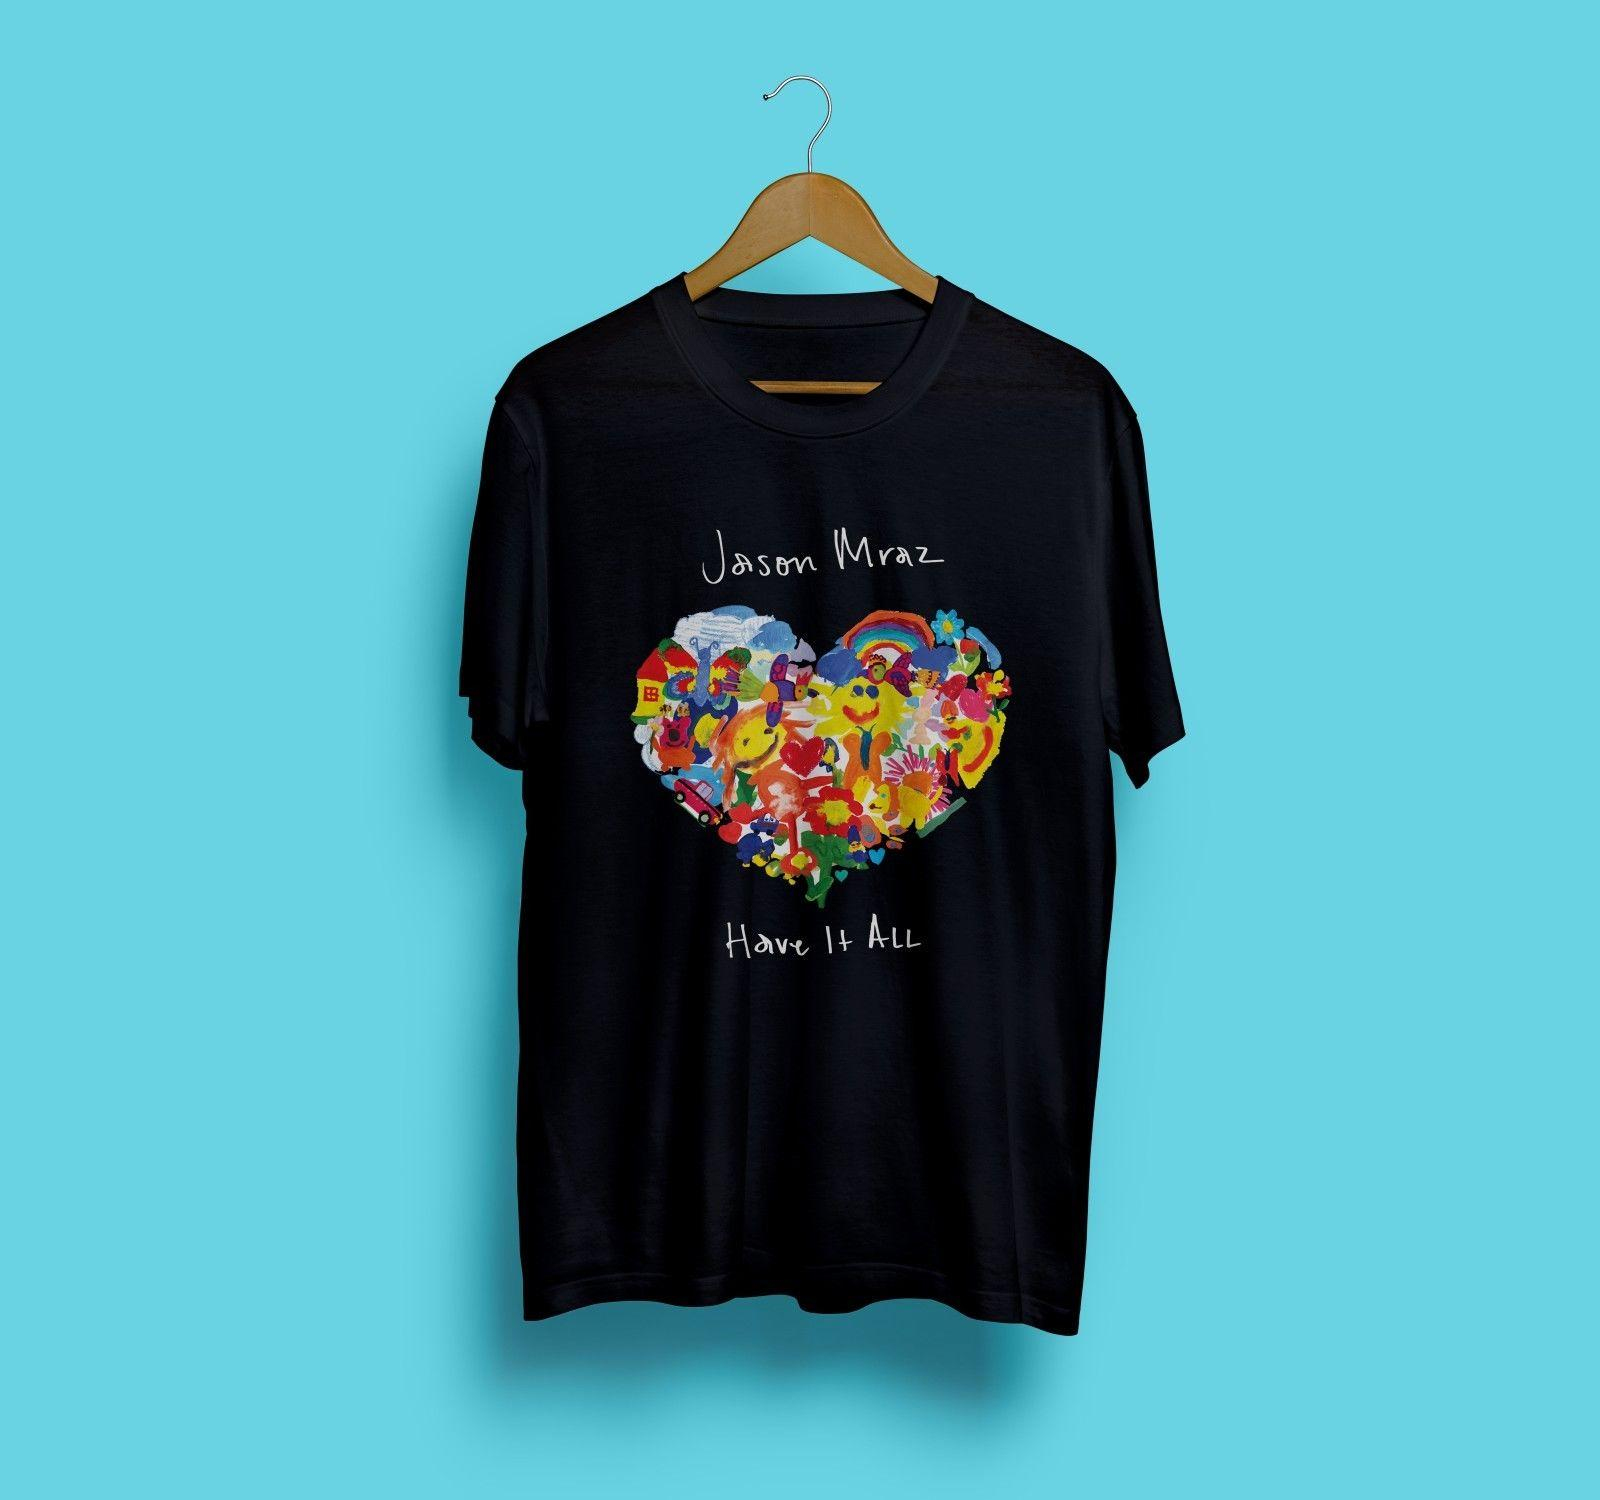 b5d528e8eae Jason Mraz Vibes Summer Tour 2018 T Shirt Black Size S 2XL 2018 Fashion T  Shirt 100% Cotton Tee Shirt Coolest Shirt Tees T Shirts From Funnyteeshirt